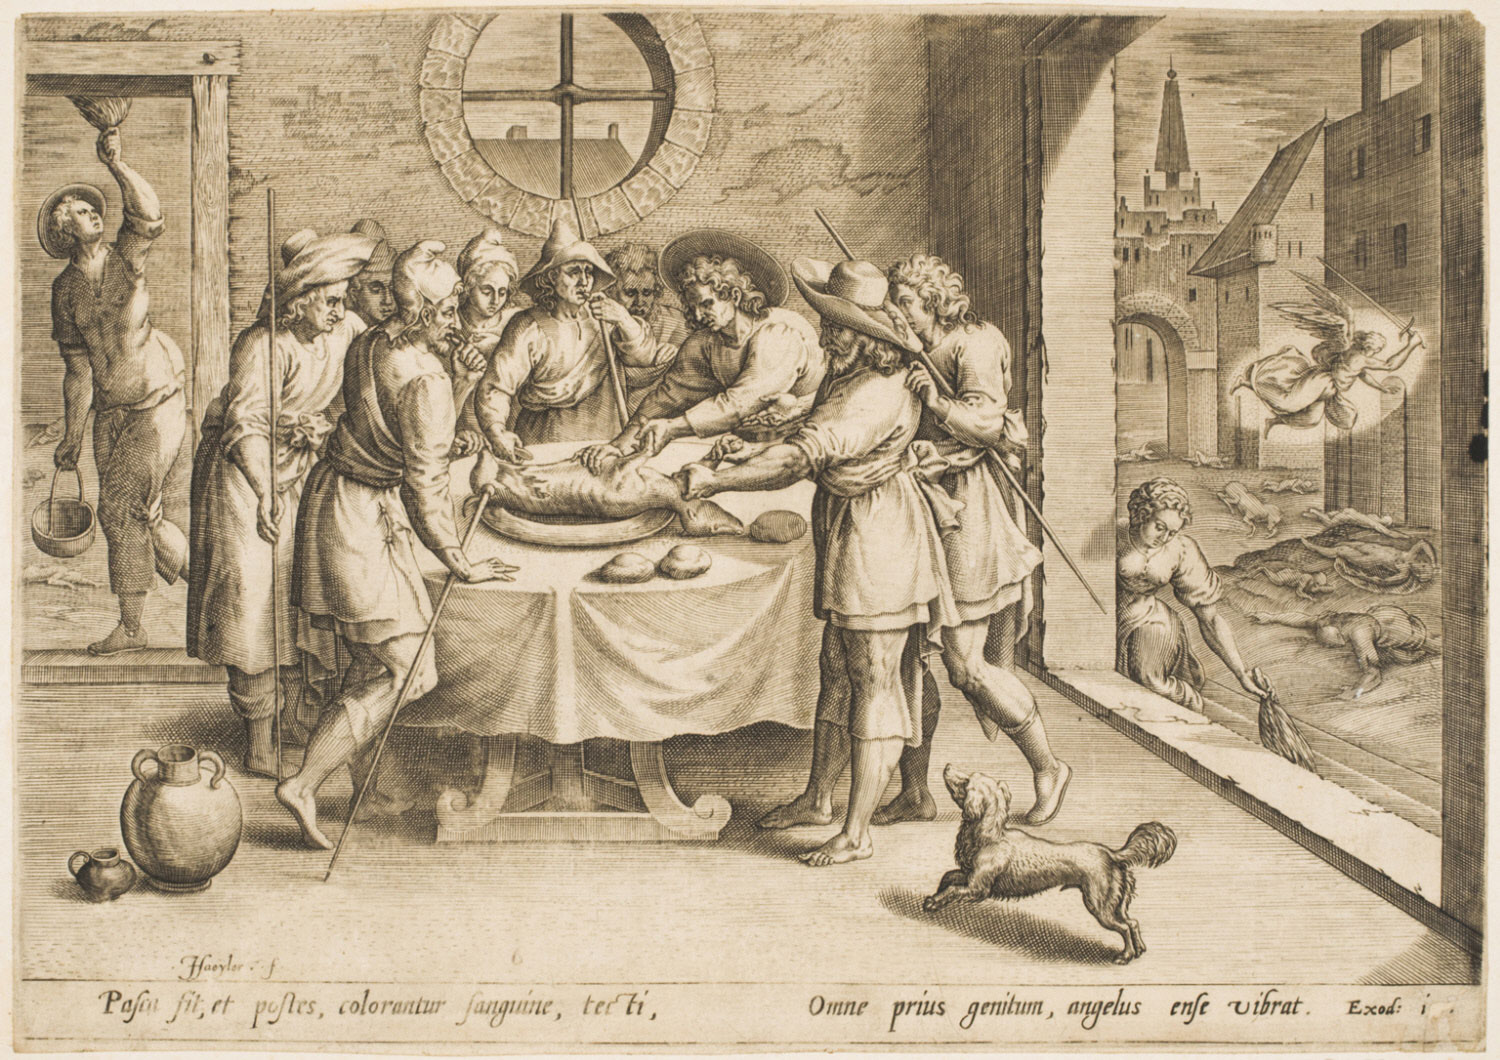 Preparation for the Passover  , 1585, by Jan Sadeler I, Flemish from the  Philadelphia Museum of Art